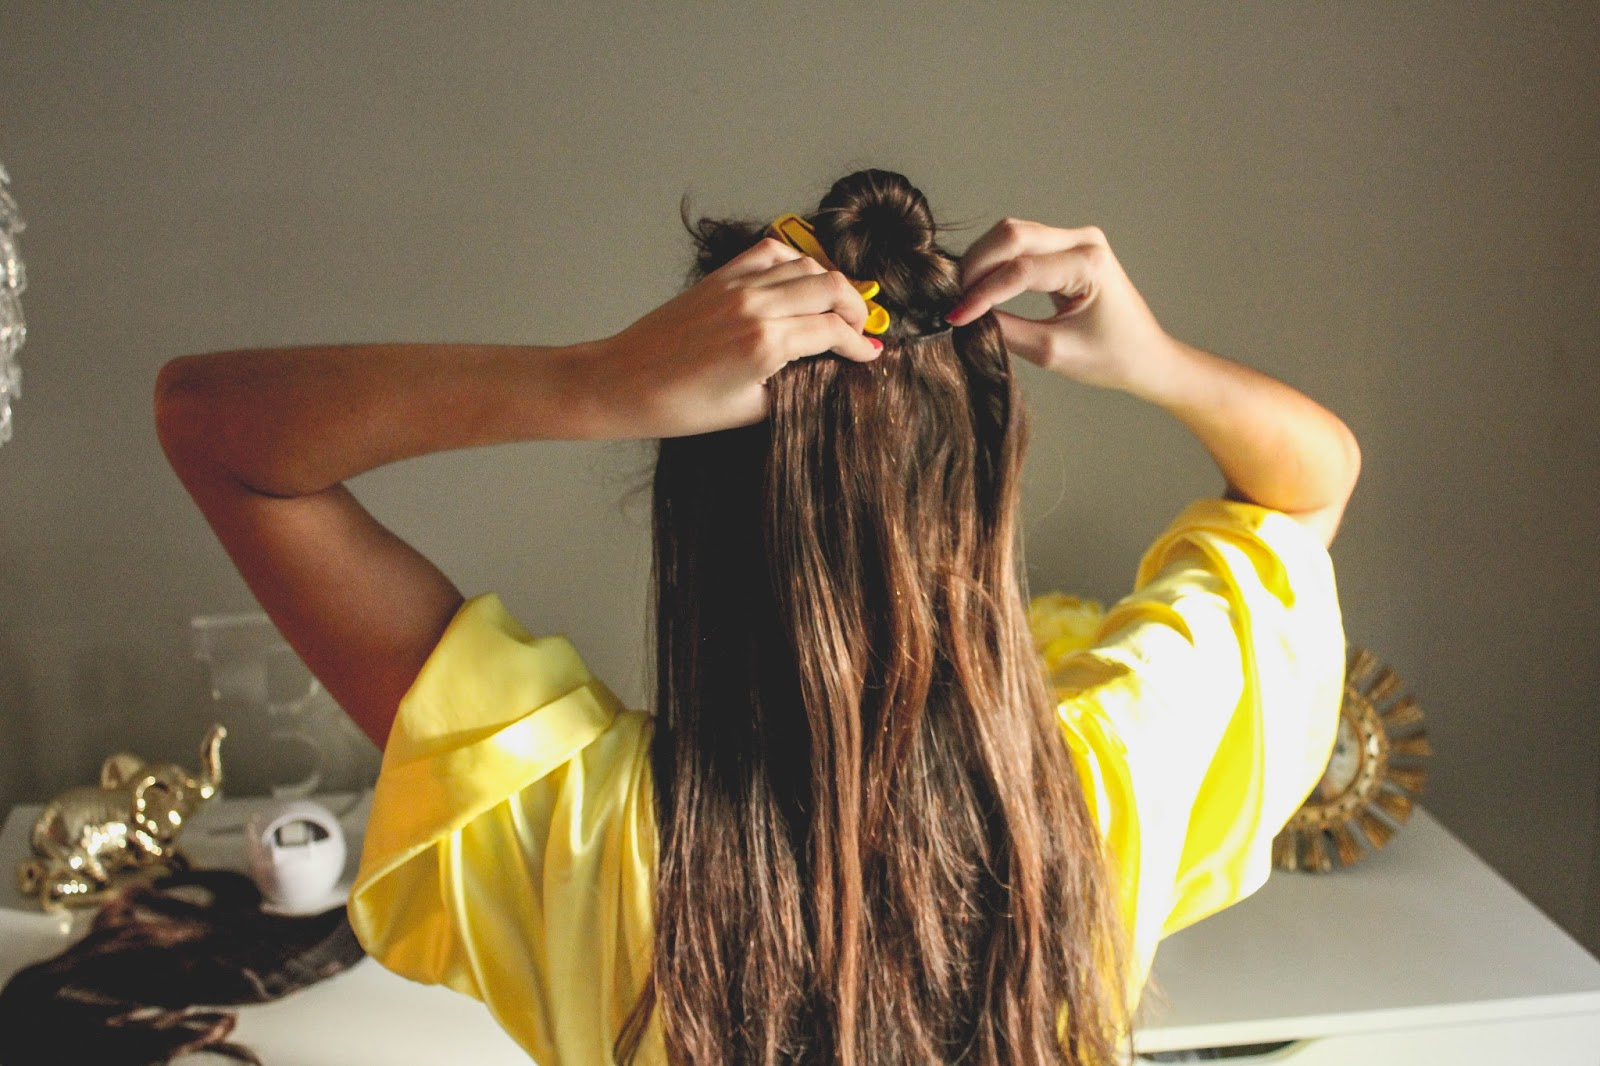 Luscious Length with Irresistible Me - How To Wear Hair Extensions / www.Neutral2Neon.com